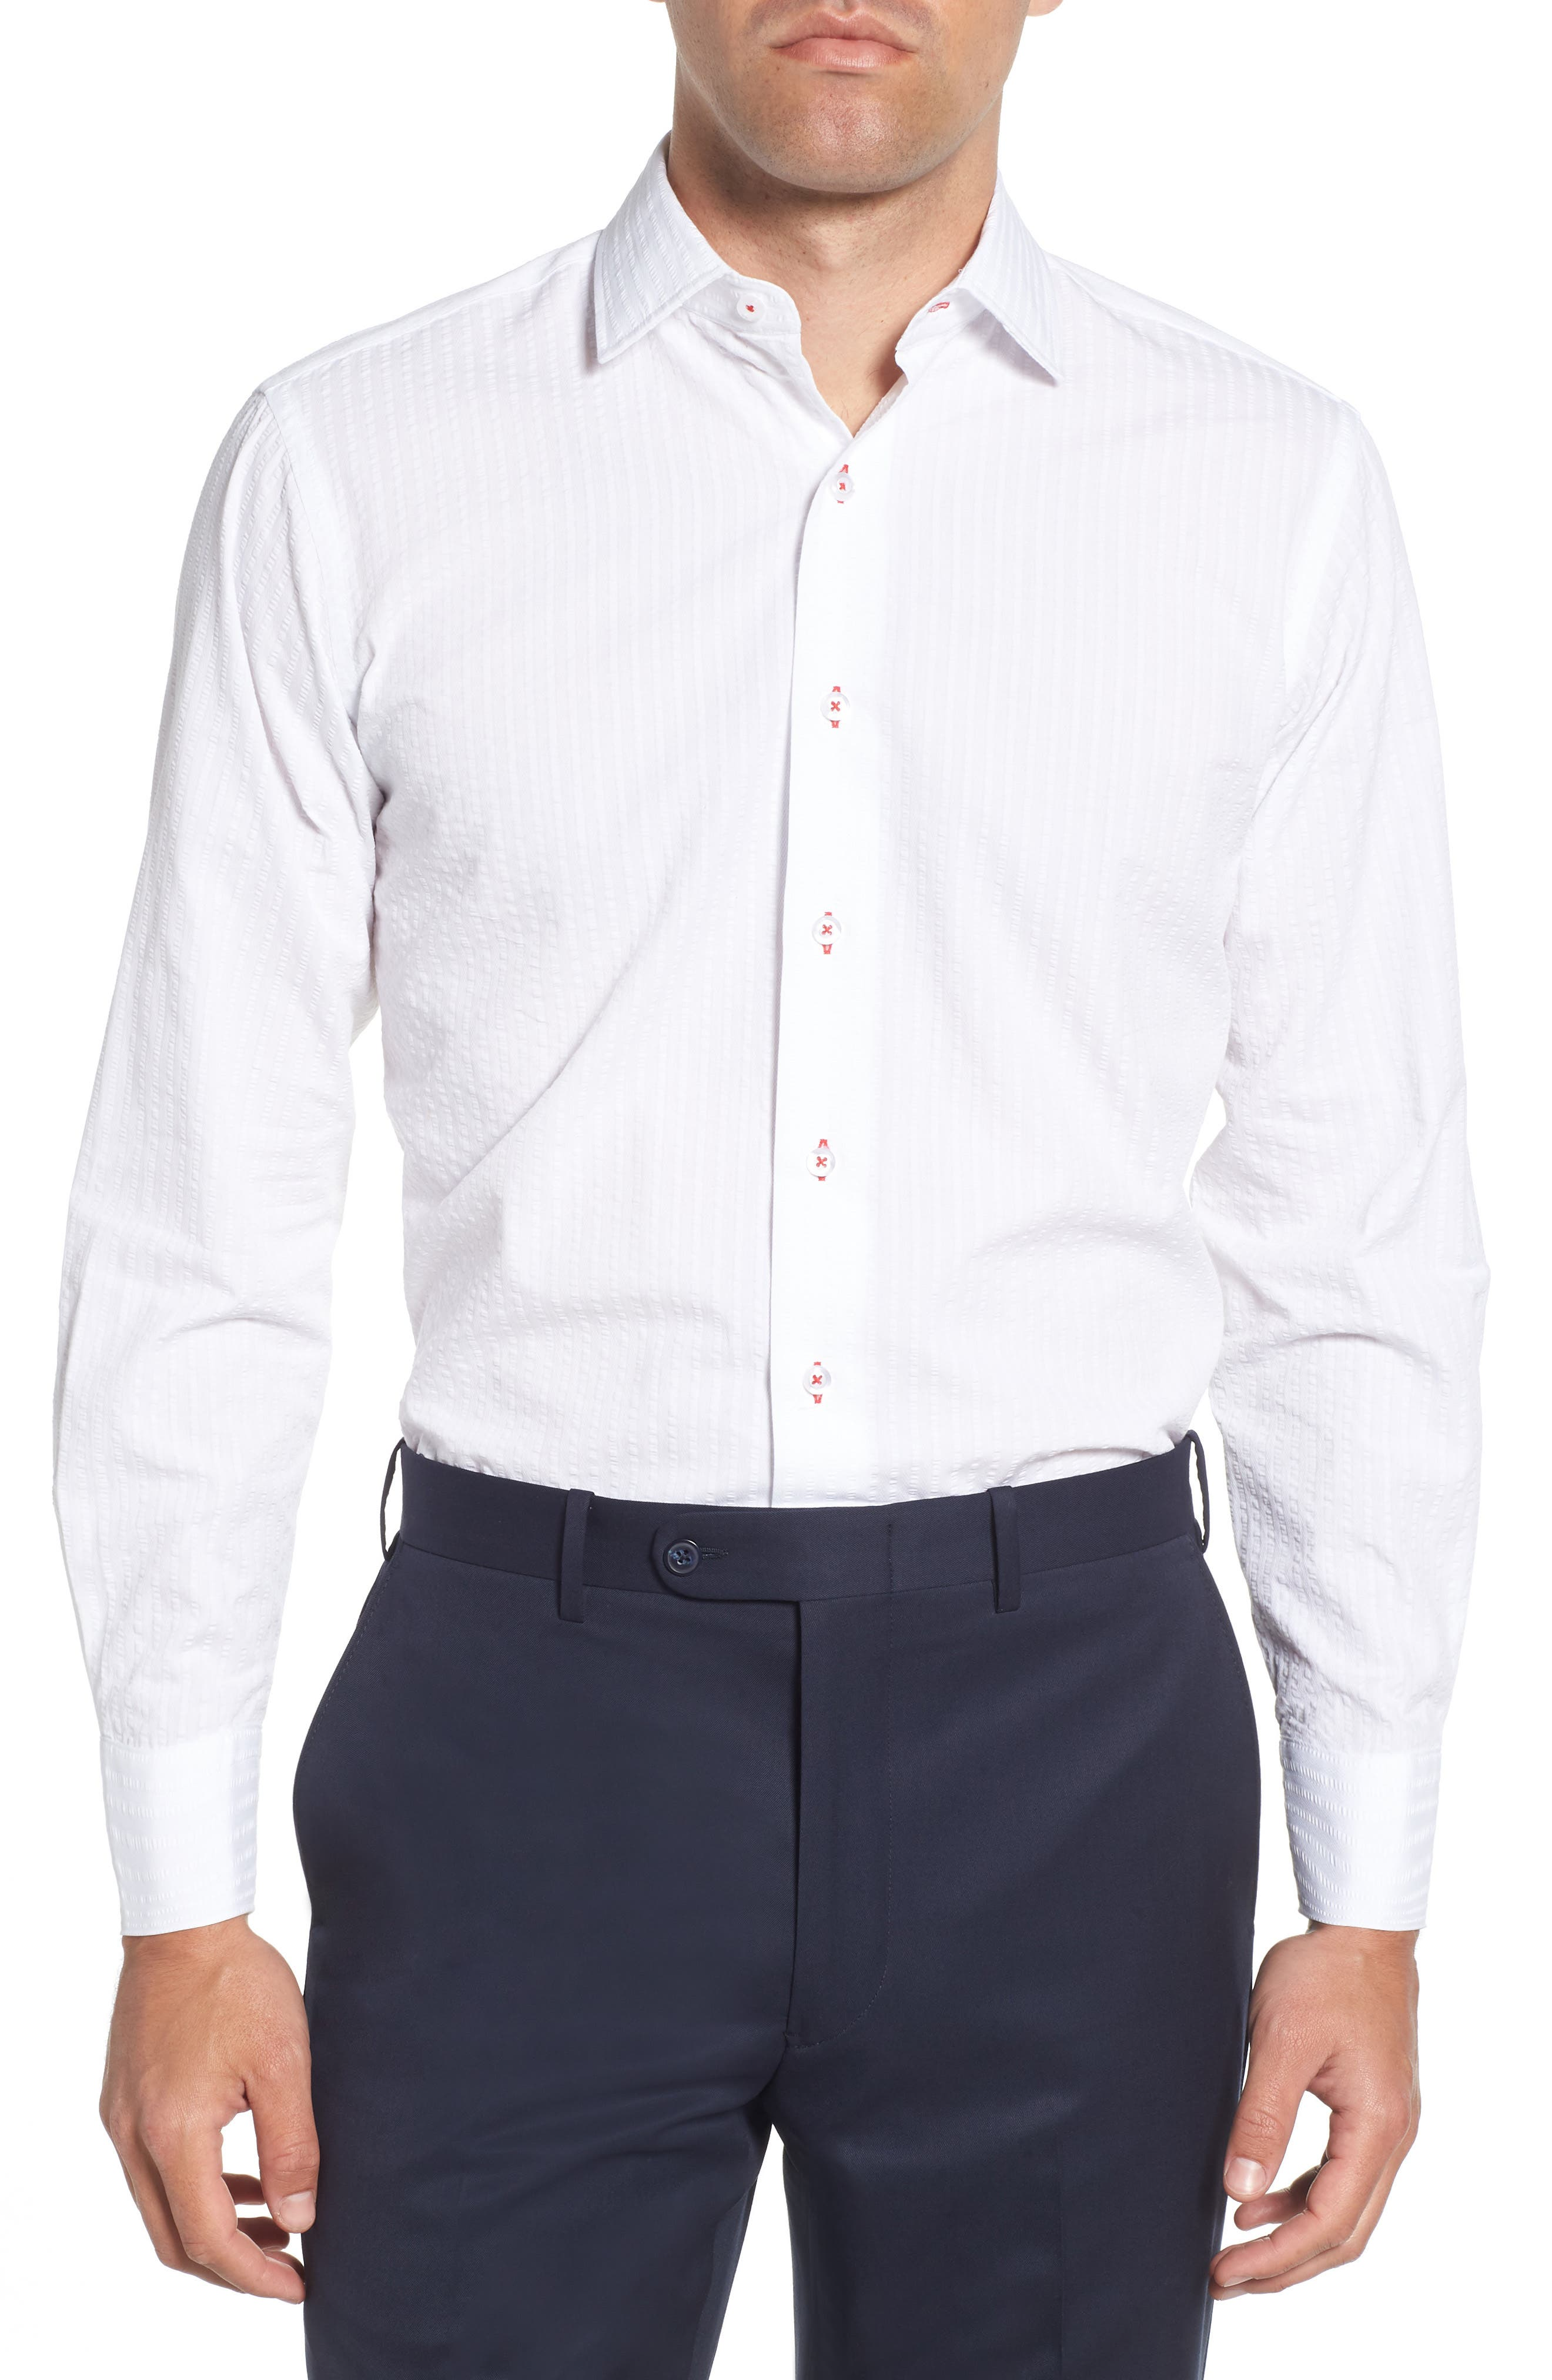 Trim Fit Seersucker Dress Shirt,                             Main thumbnail 1, color,                             White